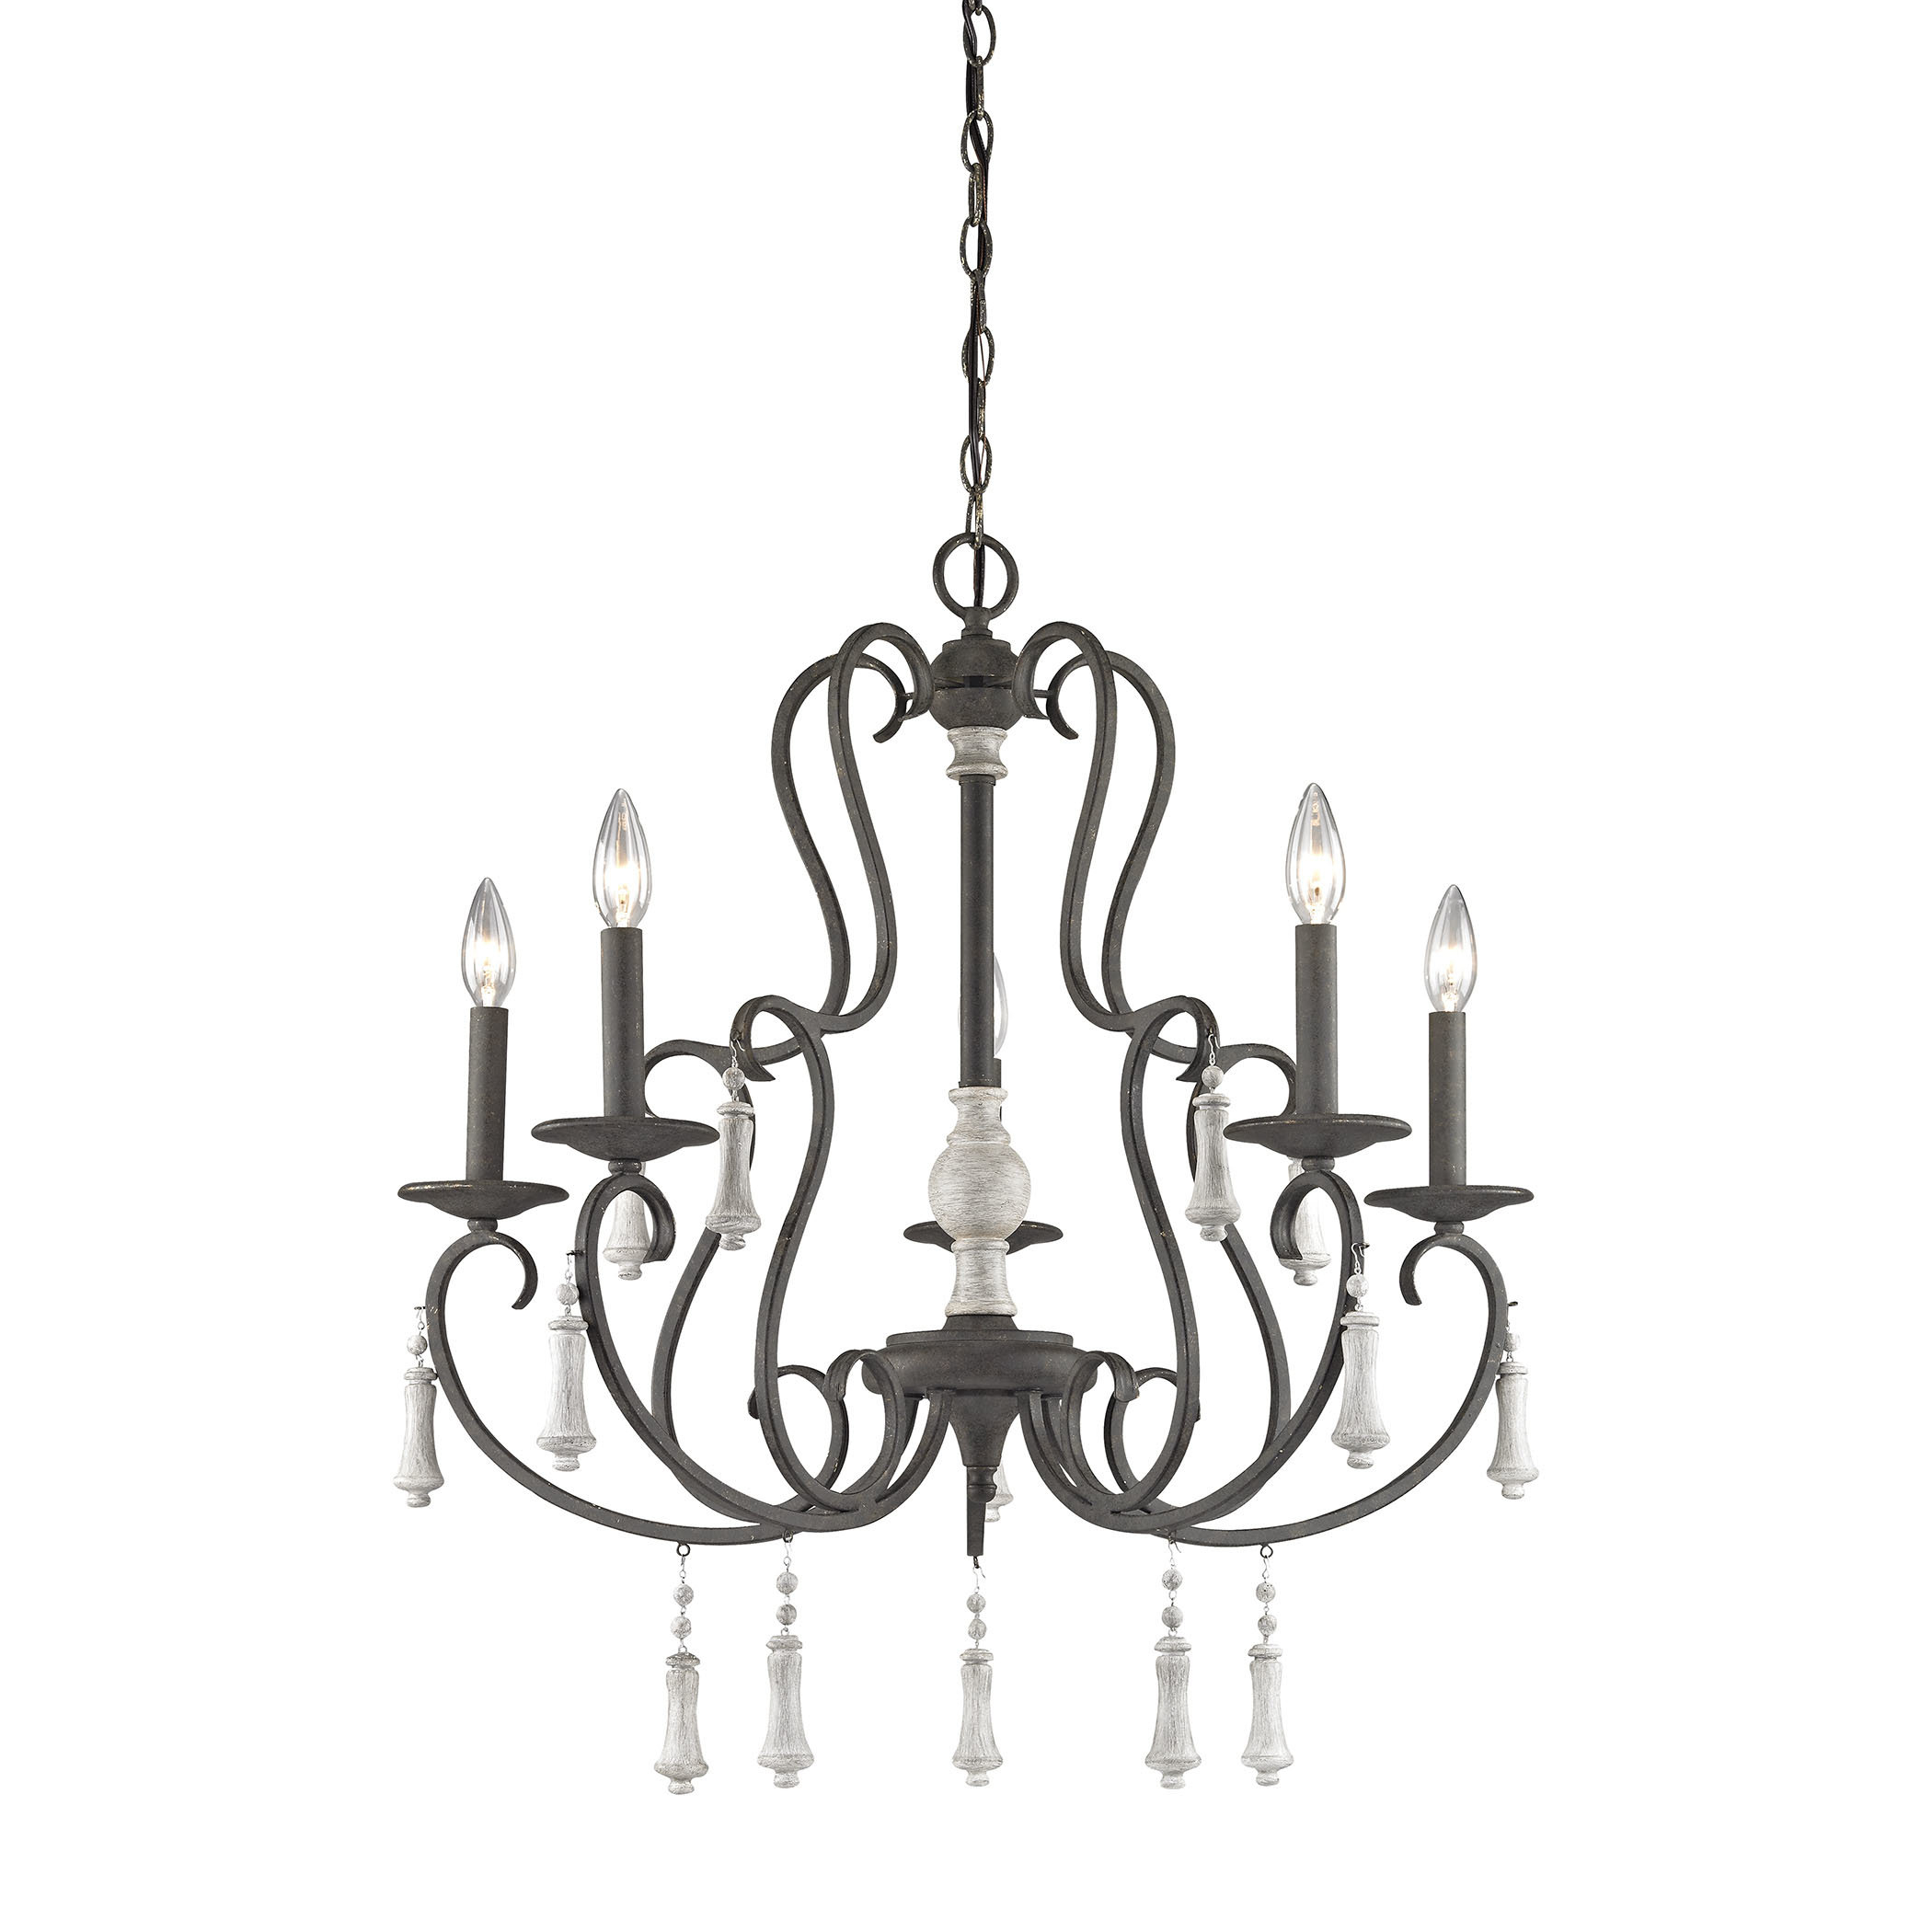 Pollitt 5 Light Chandelier Pertaining To Gaines 9 Light Candle Style Chandeliers (View 14 of 30)